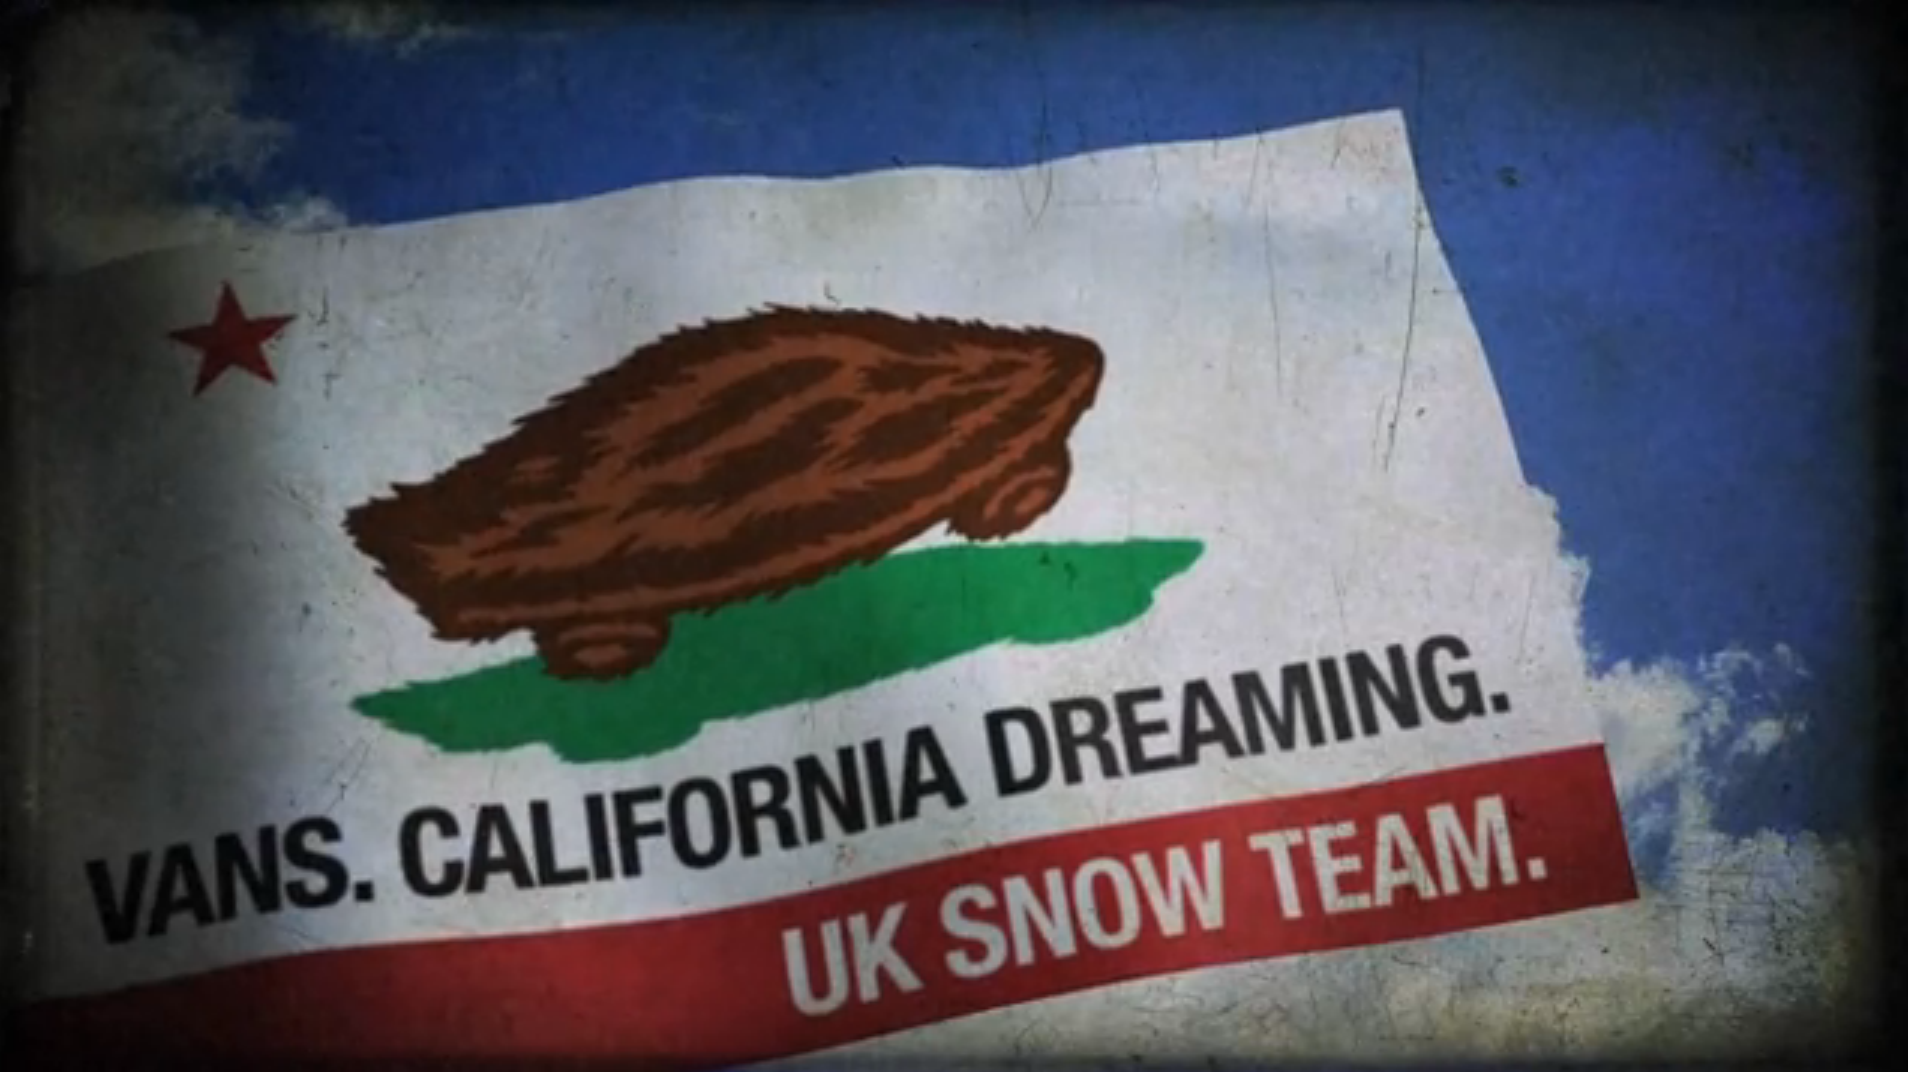 VANS CALIFORNIA DREAMING – PART 1